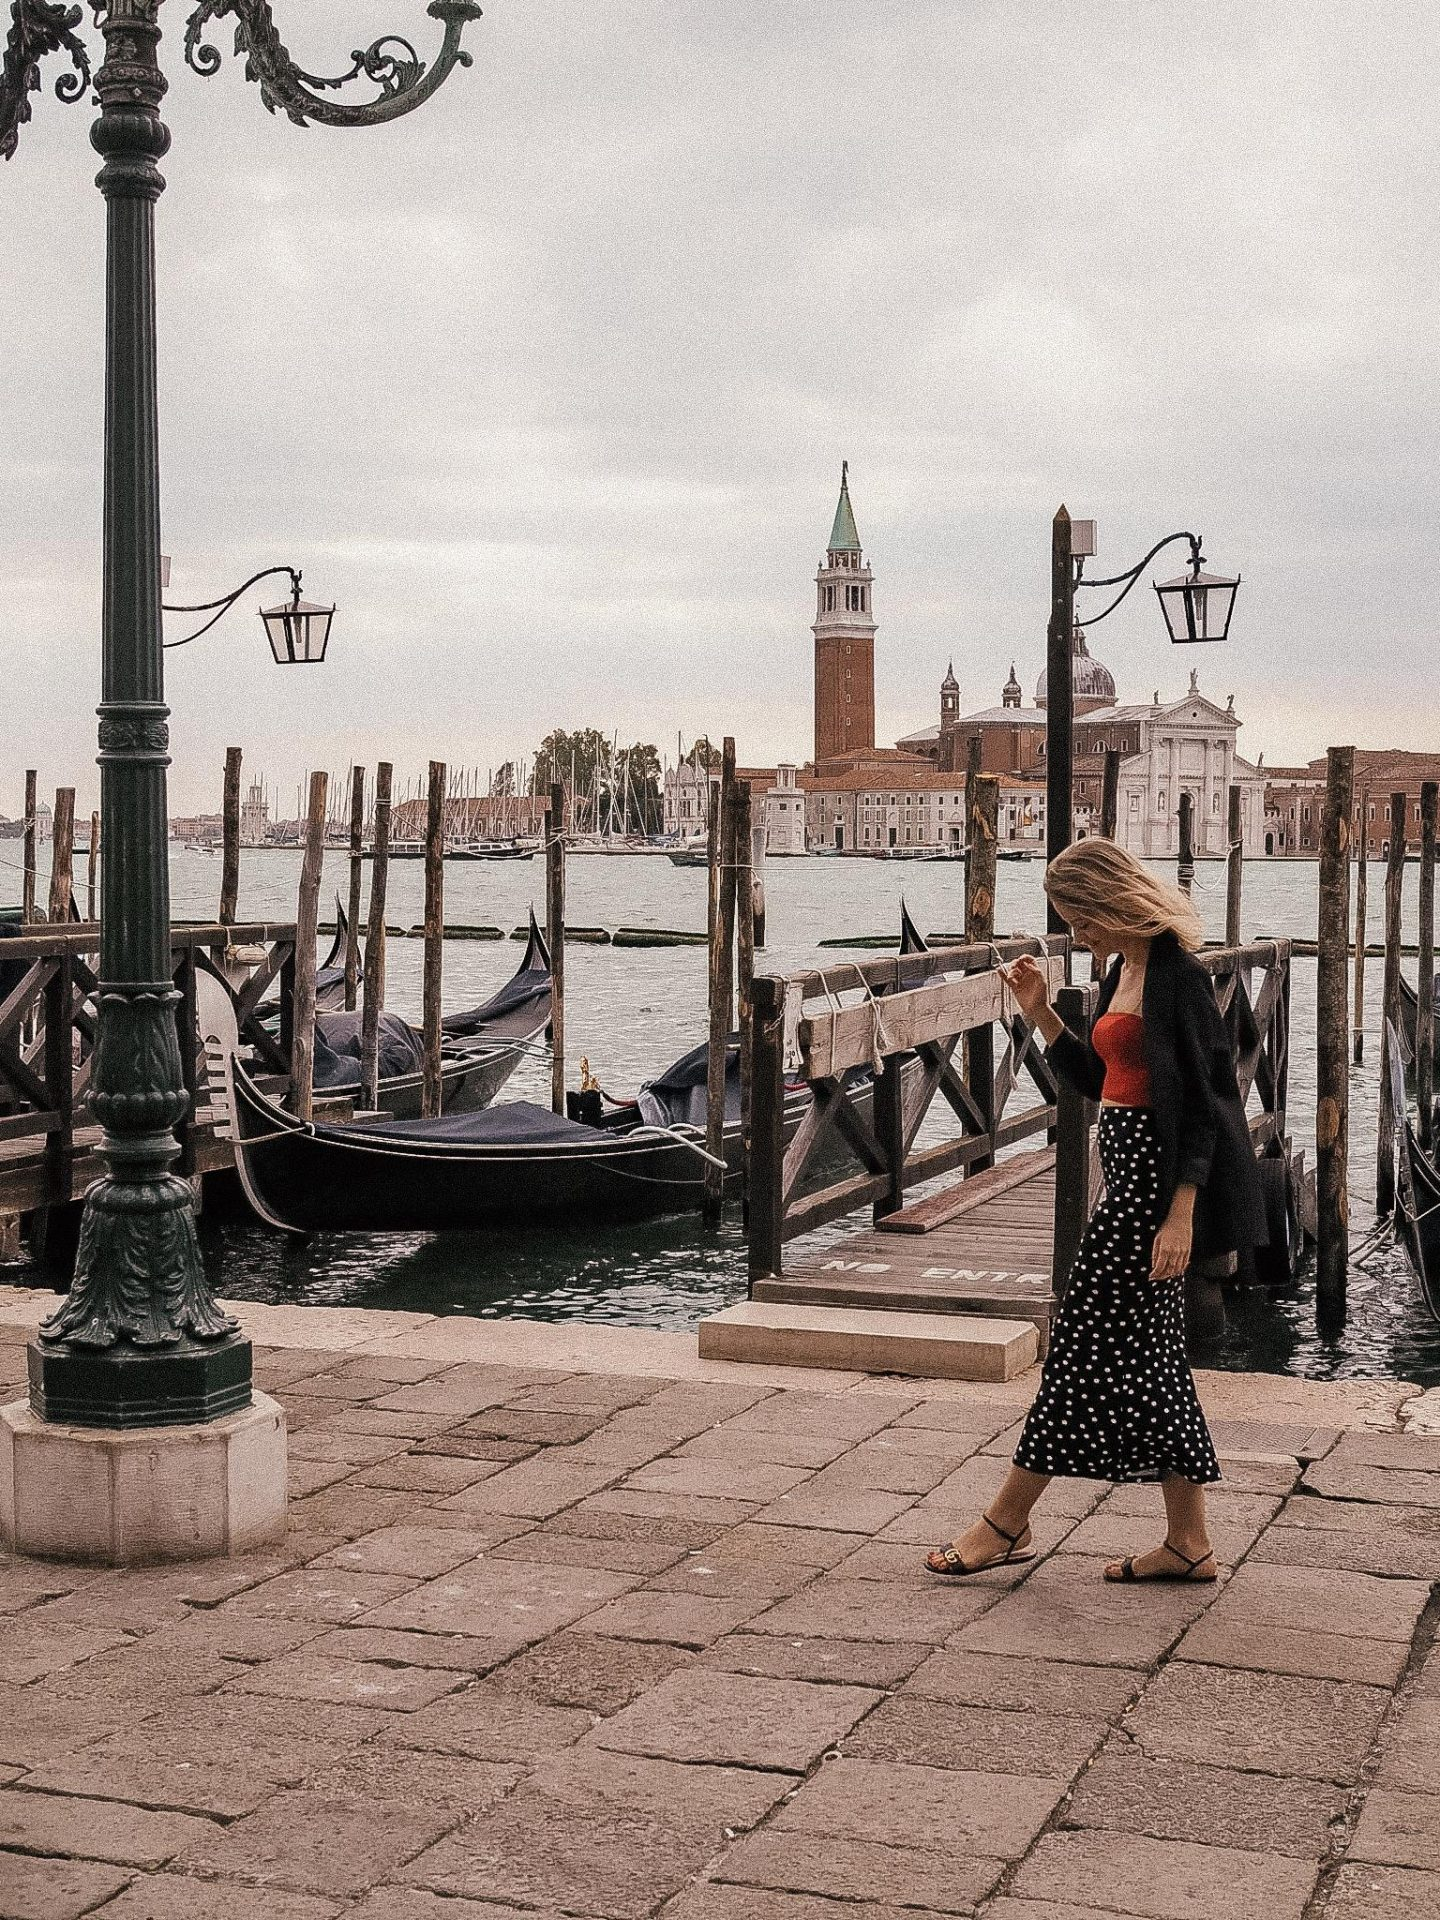 the most beautiful place to stay in Venice